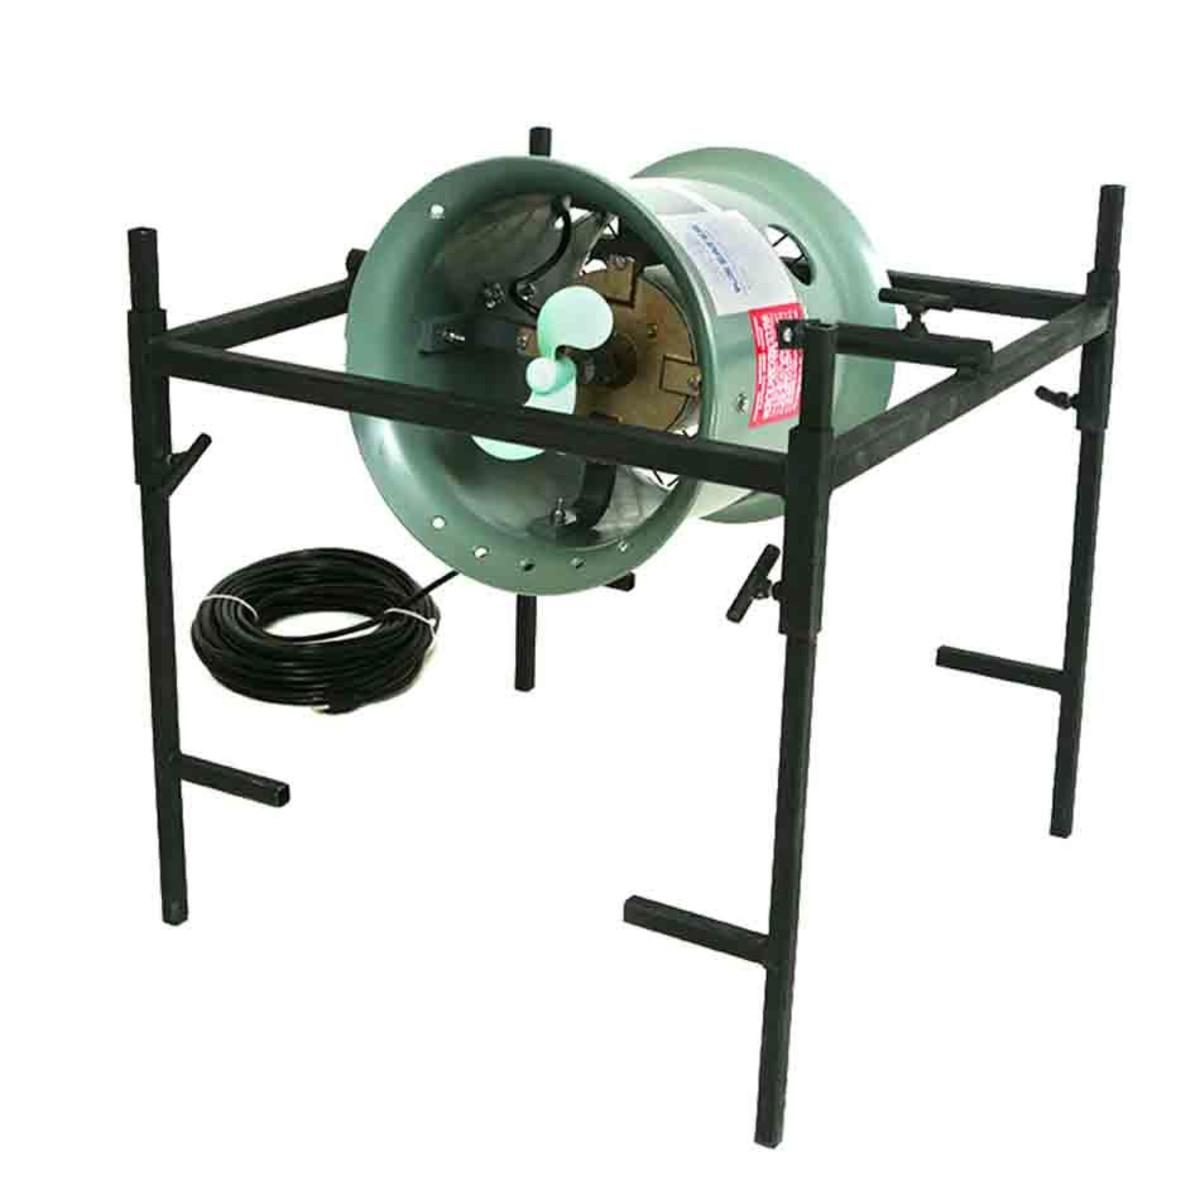 Mallard View Outdoors 230 Volt Ice Eater With Stand_1.jpg